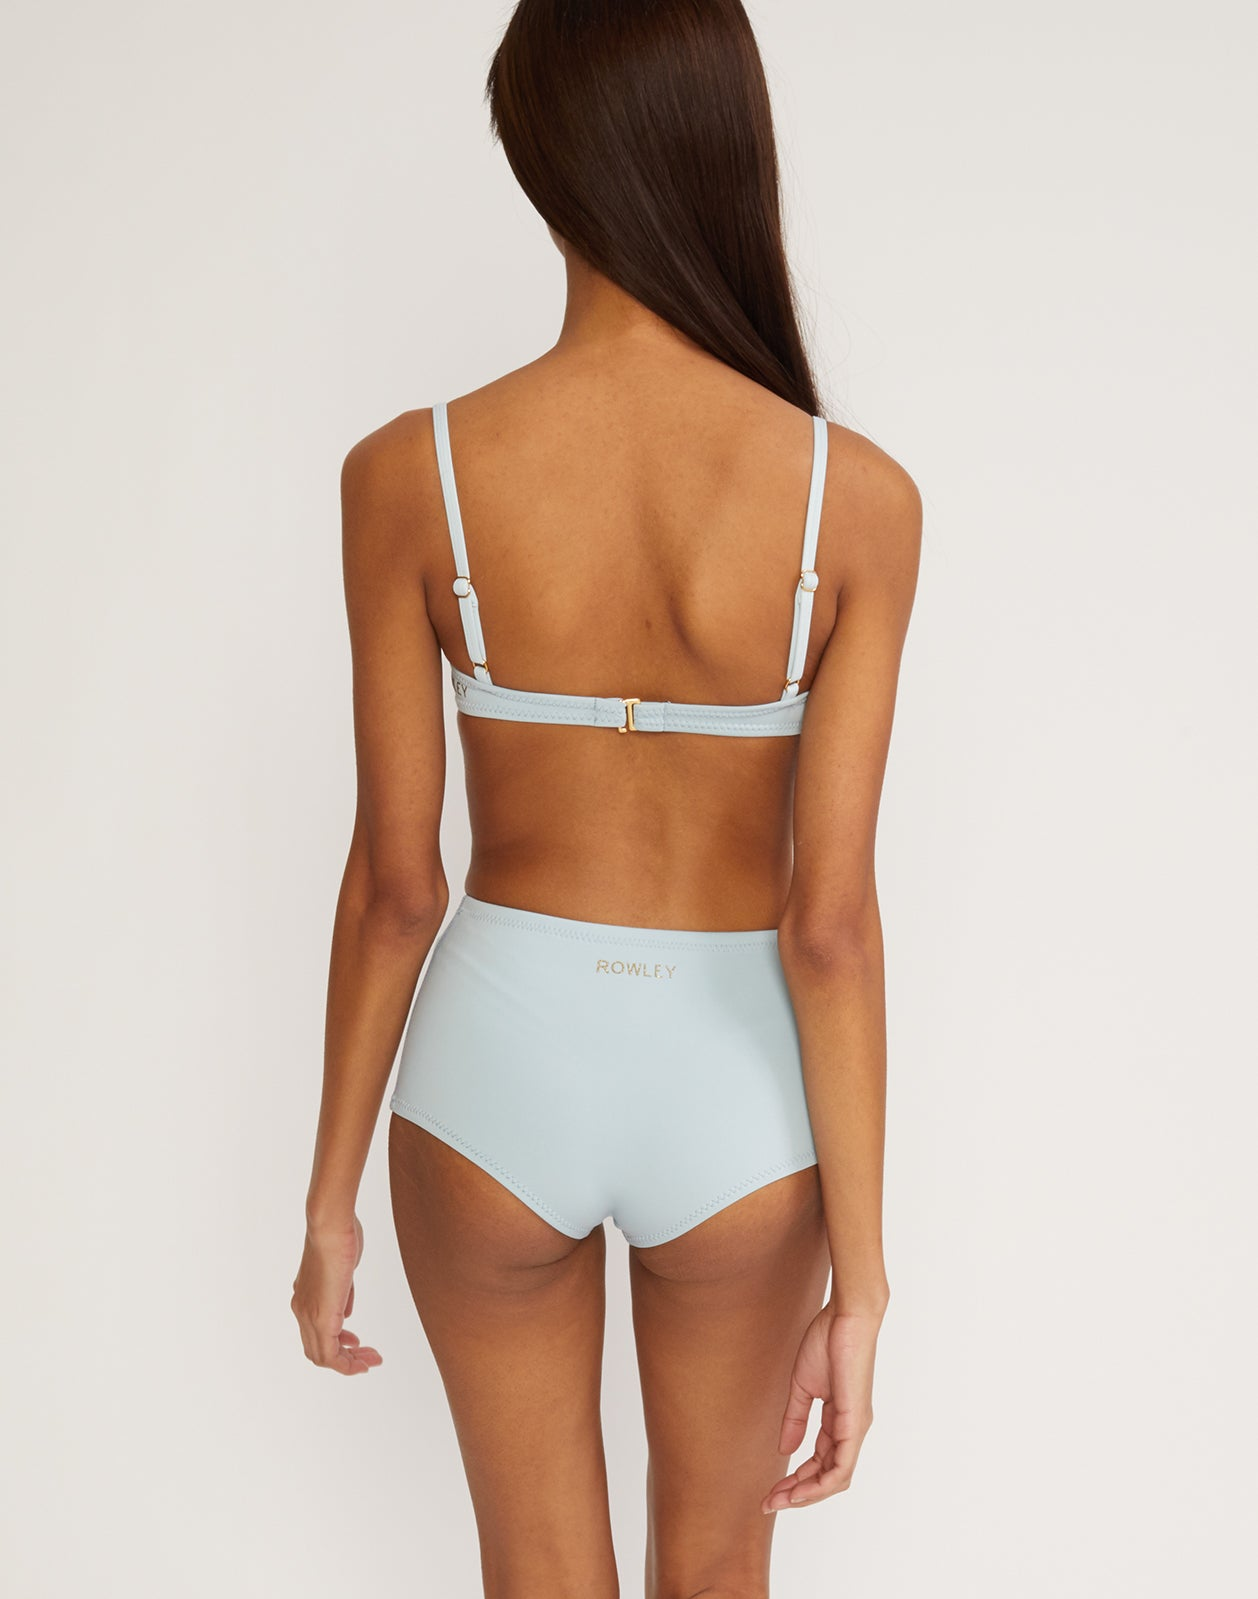 Back view of the high waisted neoprene bikini bottom.